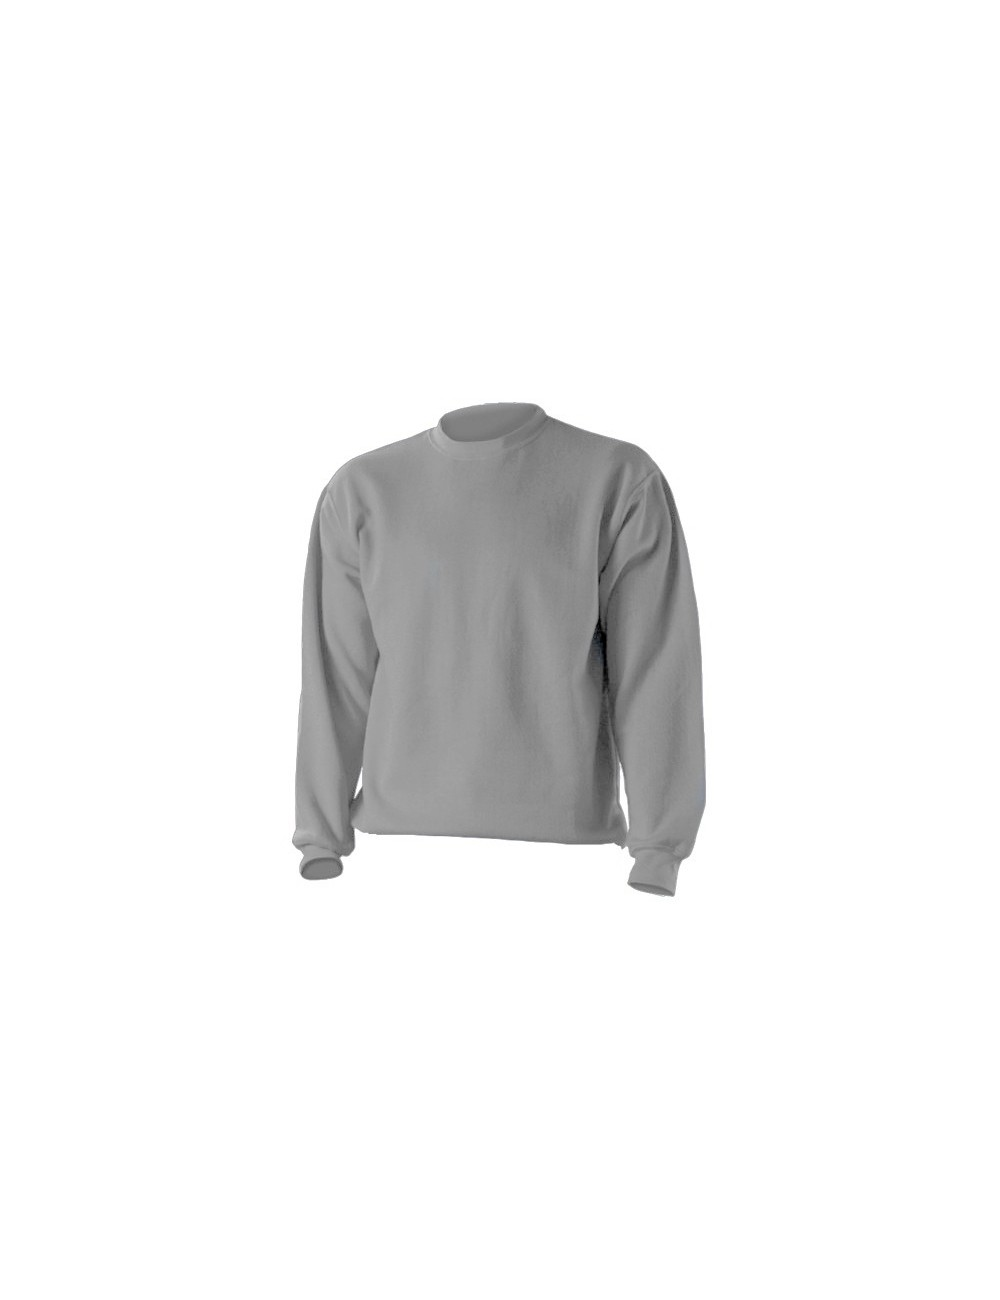 00143 Kids sweat-shirt outlet